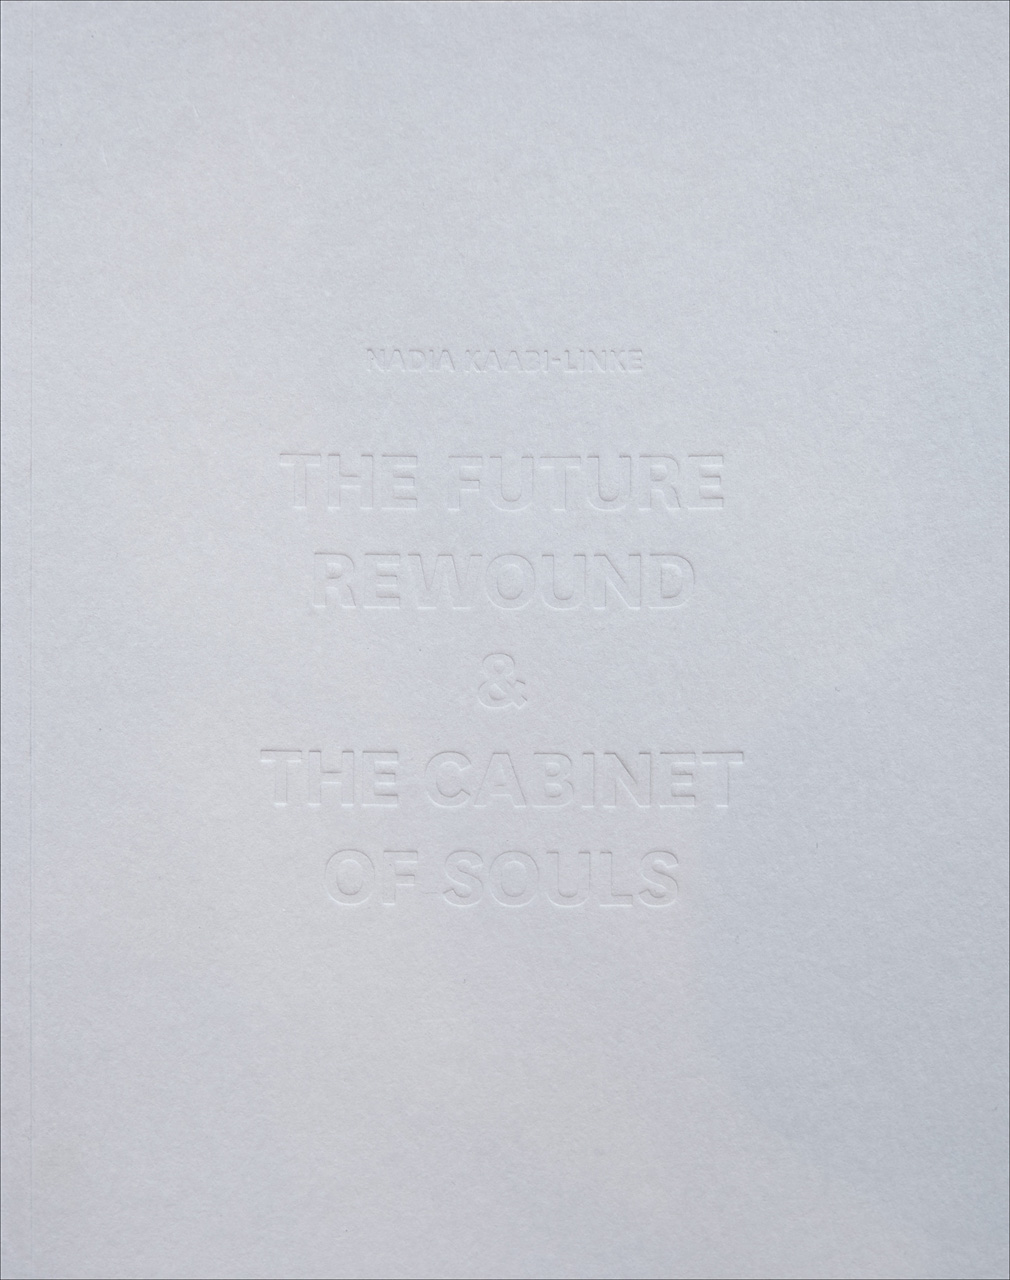 The Future Rewound and the Cabinet of Souls